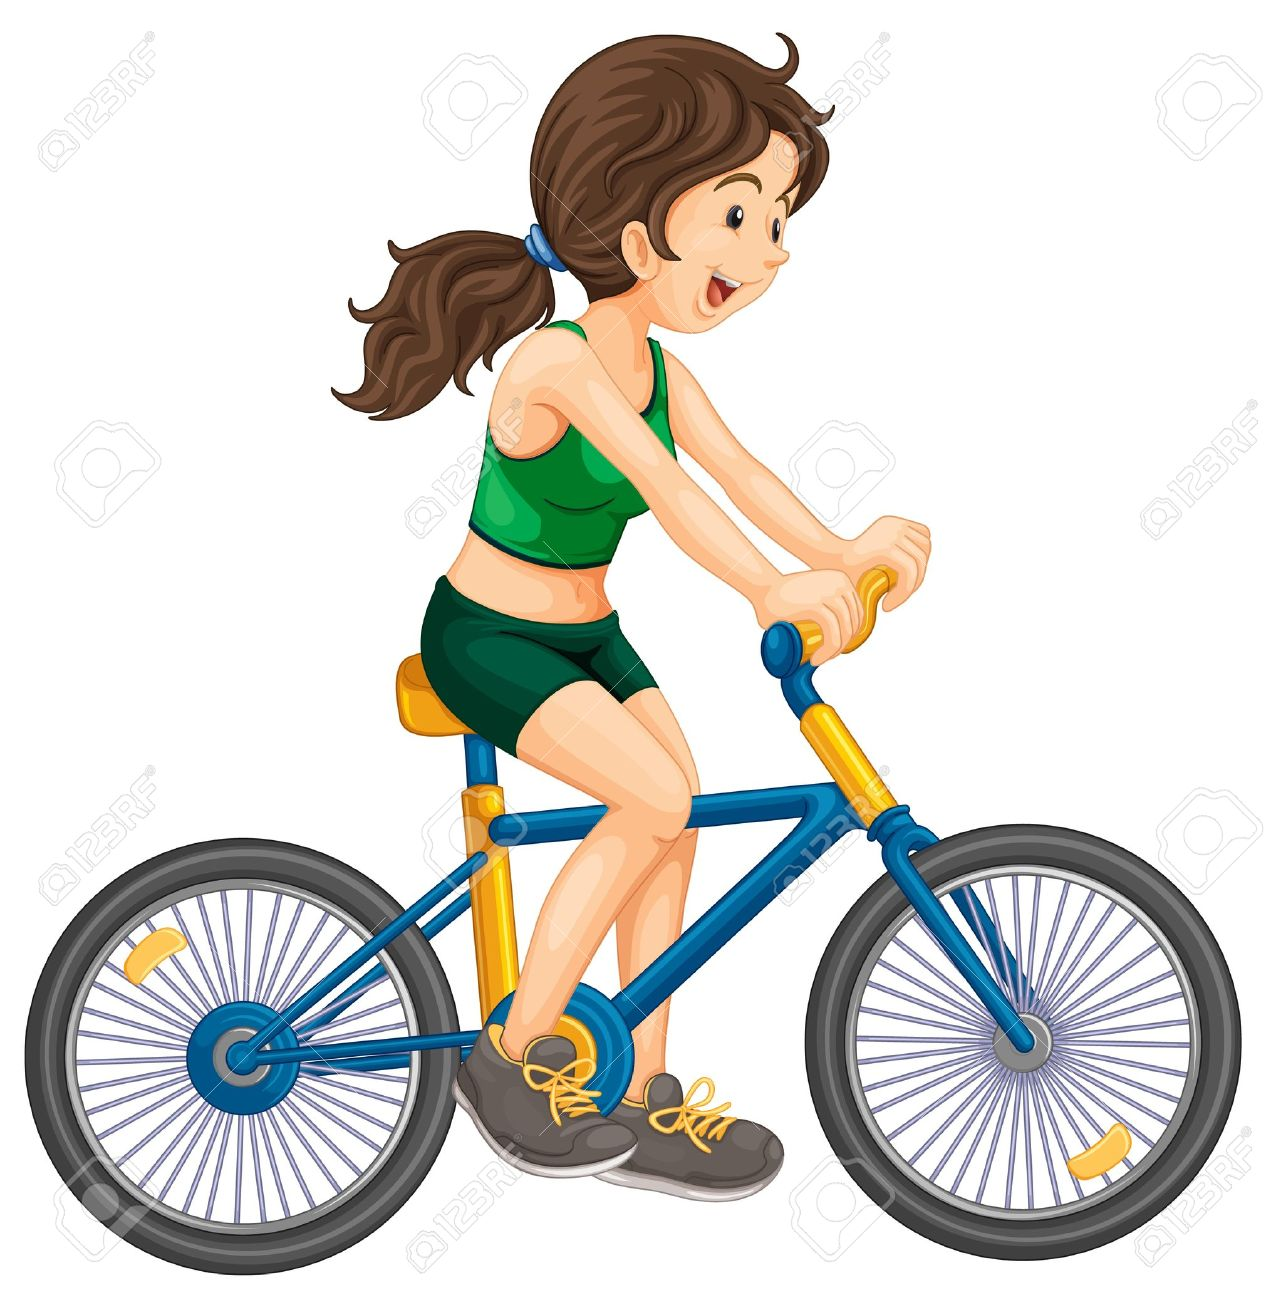 Biking clipart. Female